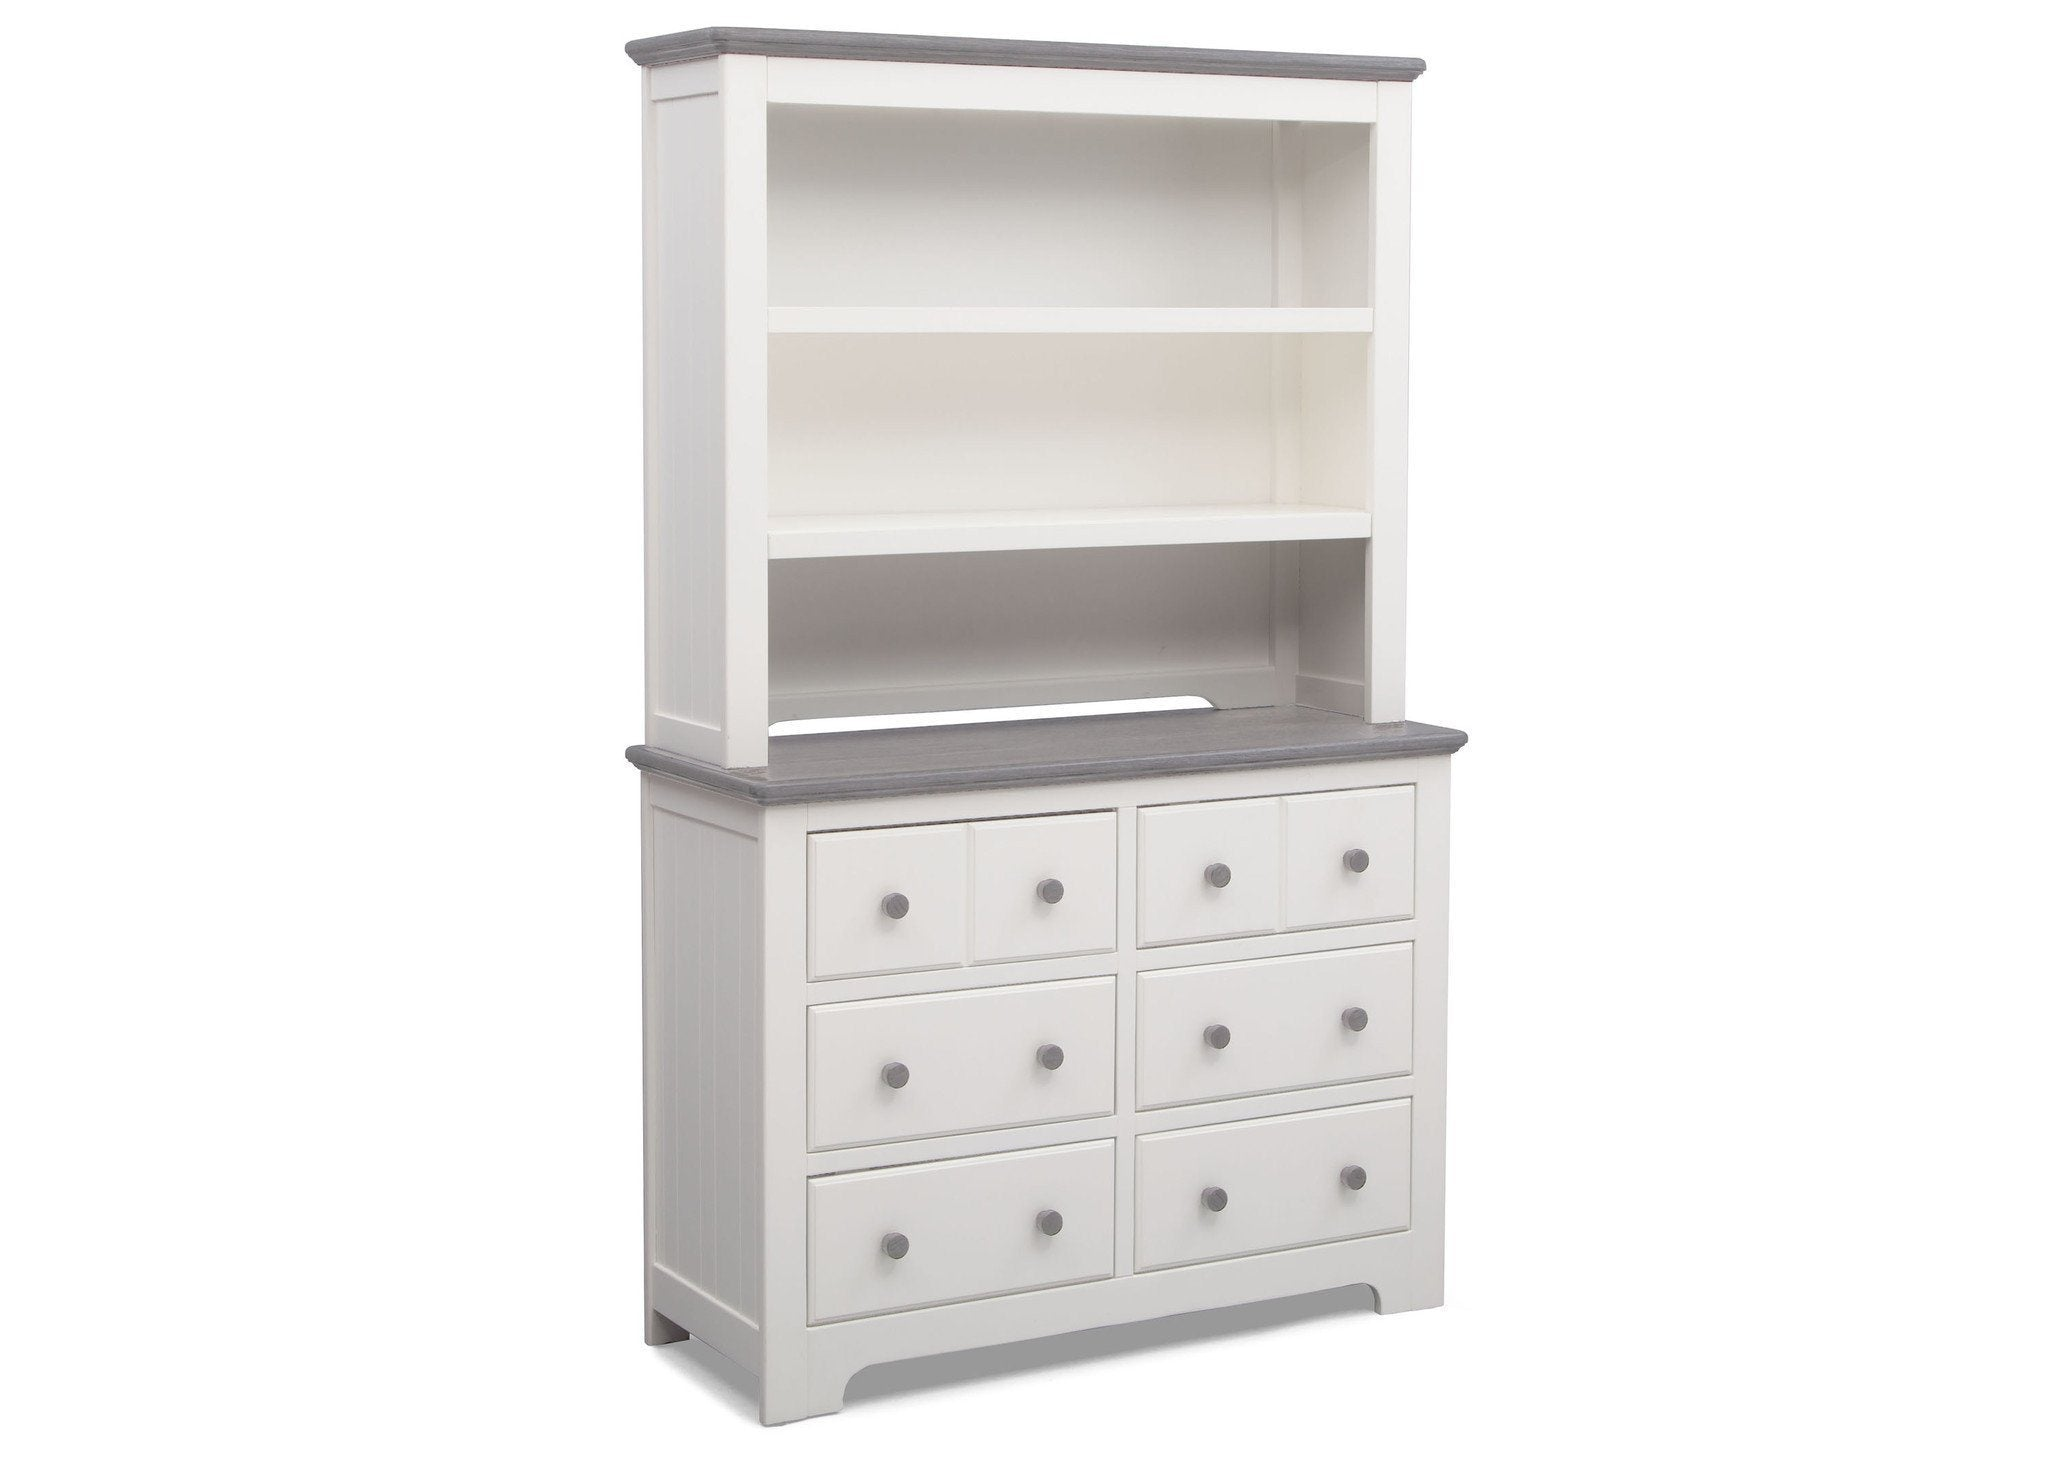 Delta Children Bianca with Rustic Haze (136) Providence 6 Drawer Dresser, with Bookcase/Hutch b5b